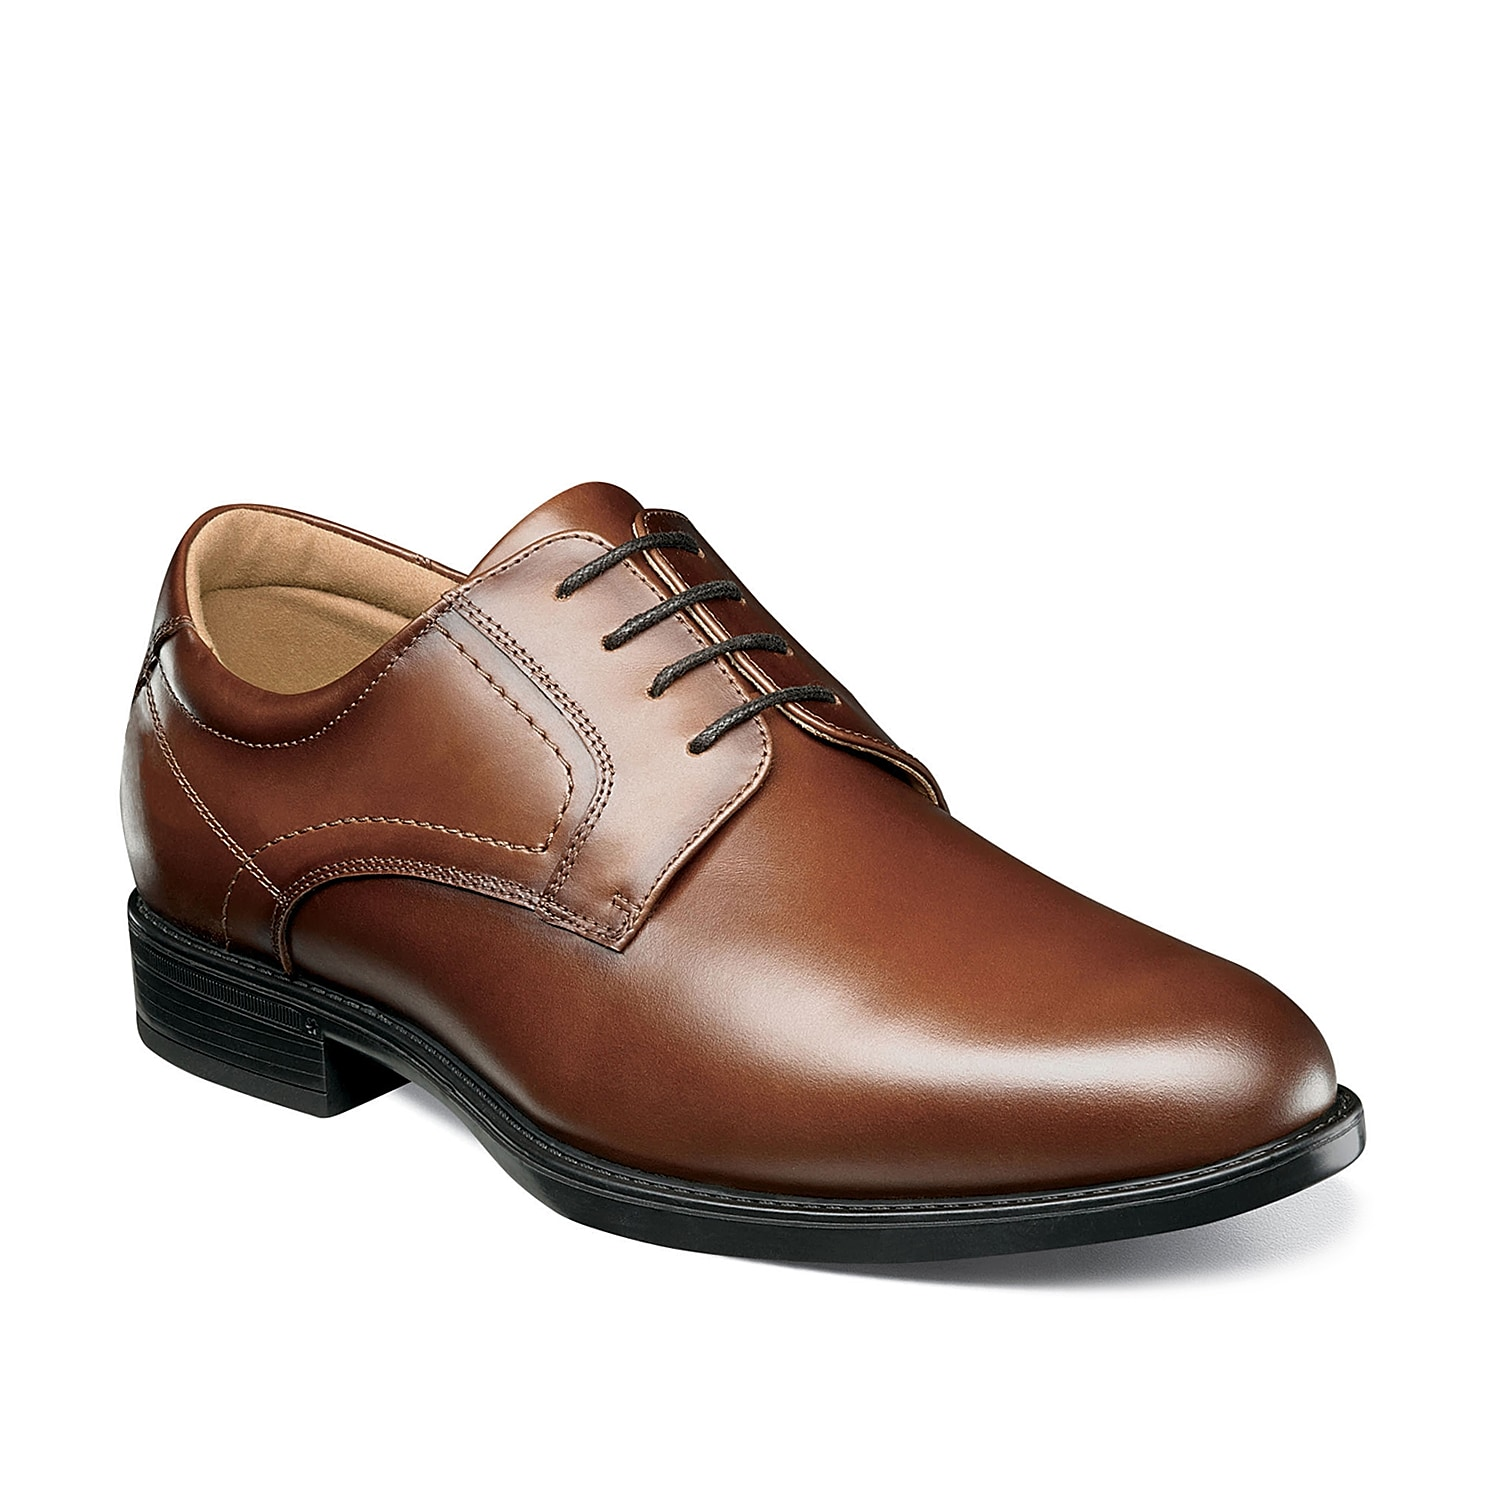 The Midtown oxford from Florsheim is built for comfort and is equipped with a deeply cushioned Ortholite® footbed to help you walk the walk all day long.